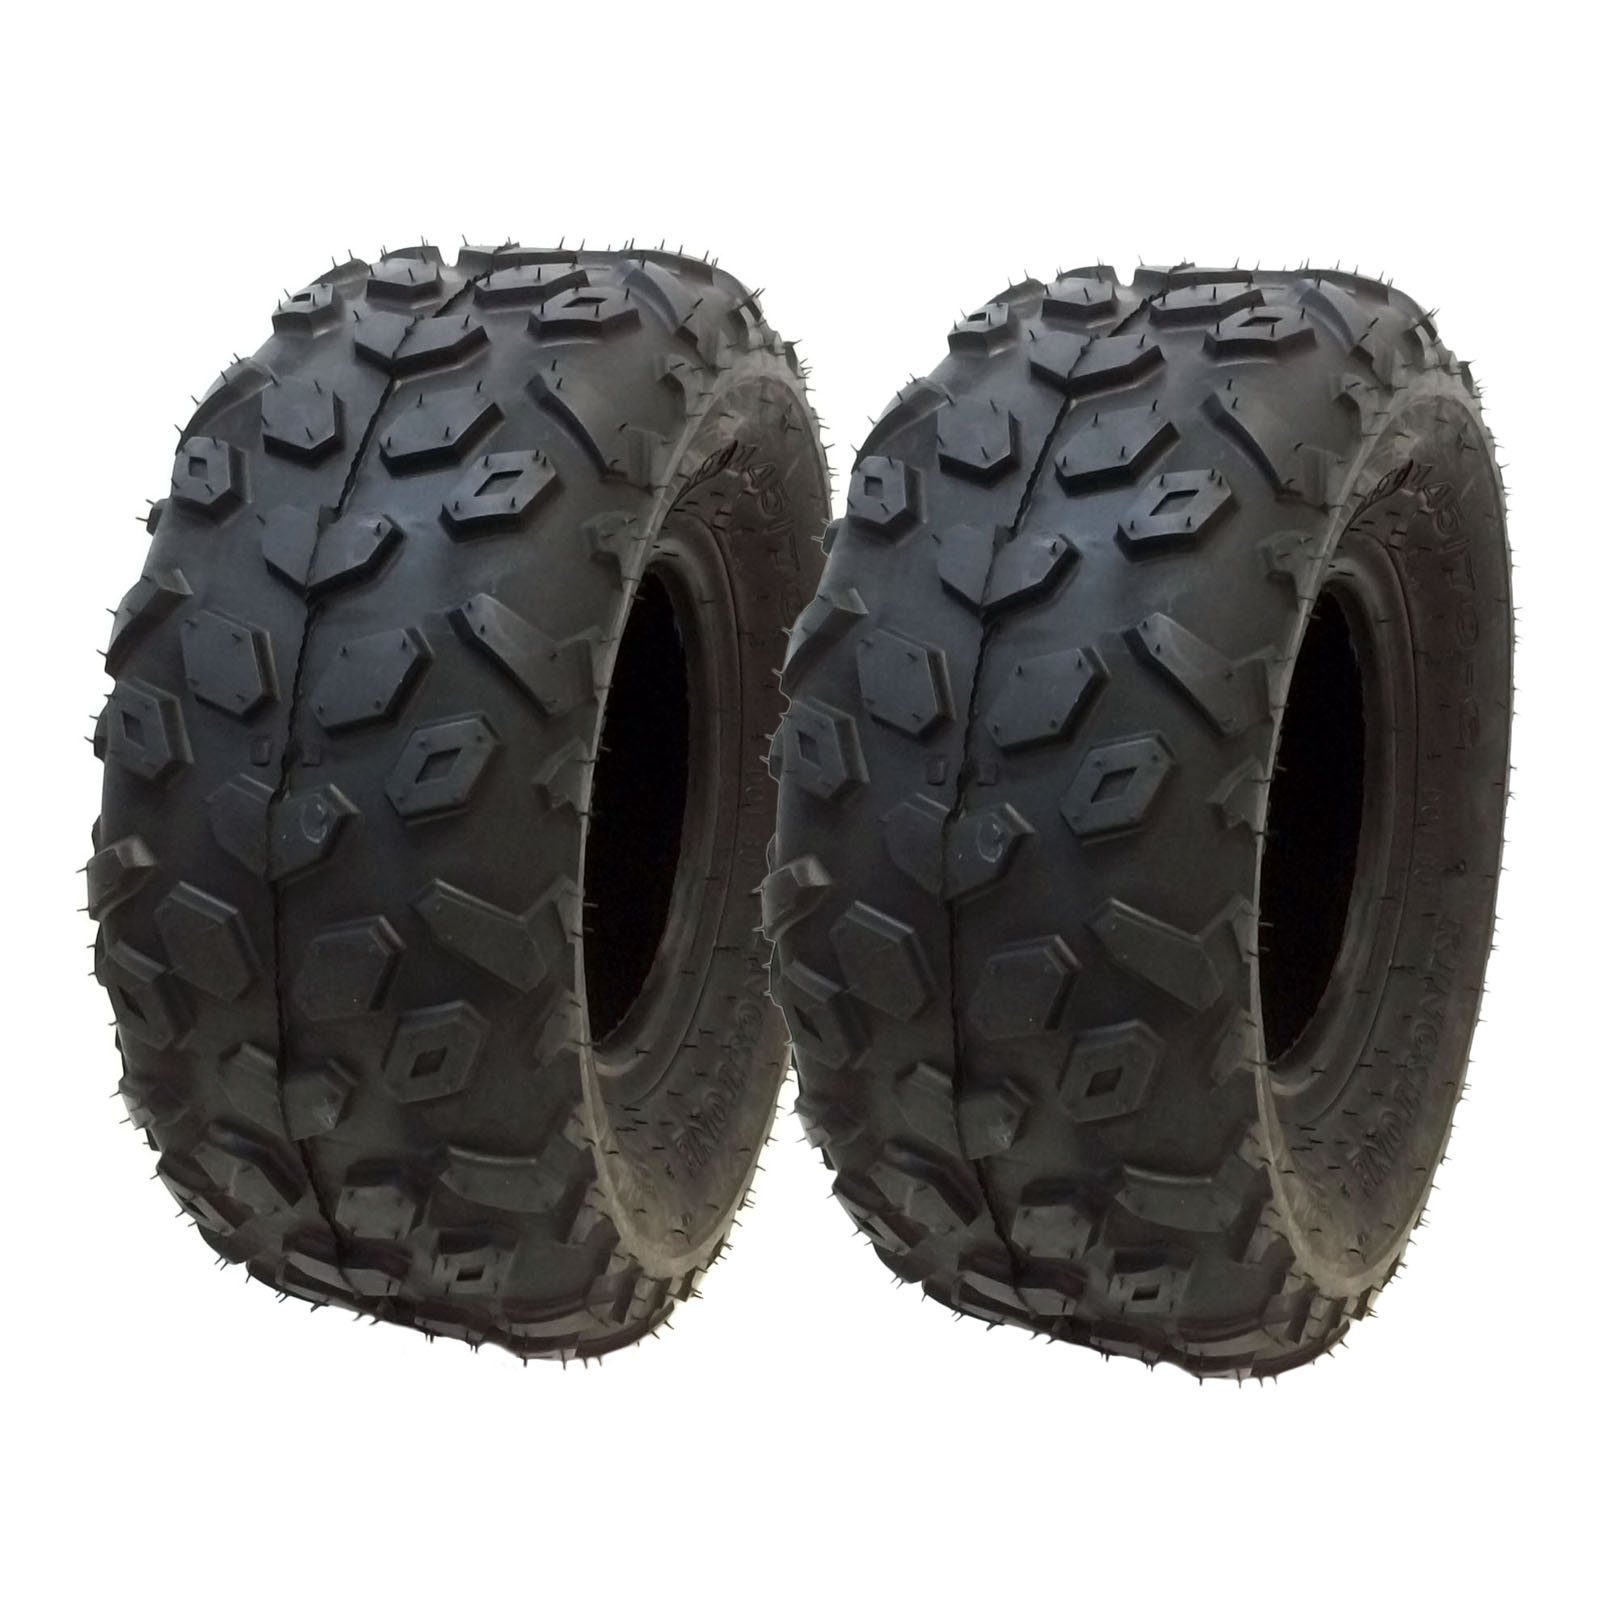 SET OF TWO: ATV Tubeless Tires 145x70-6 (14.5x7x6) P120 - Front or Rear - for RED CAT, SUNL, SUZUKI, VENTO, Small ATV w 6'' Rims